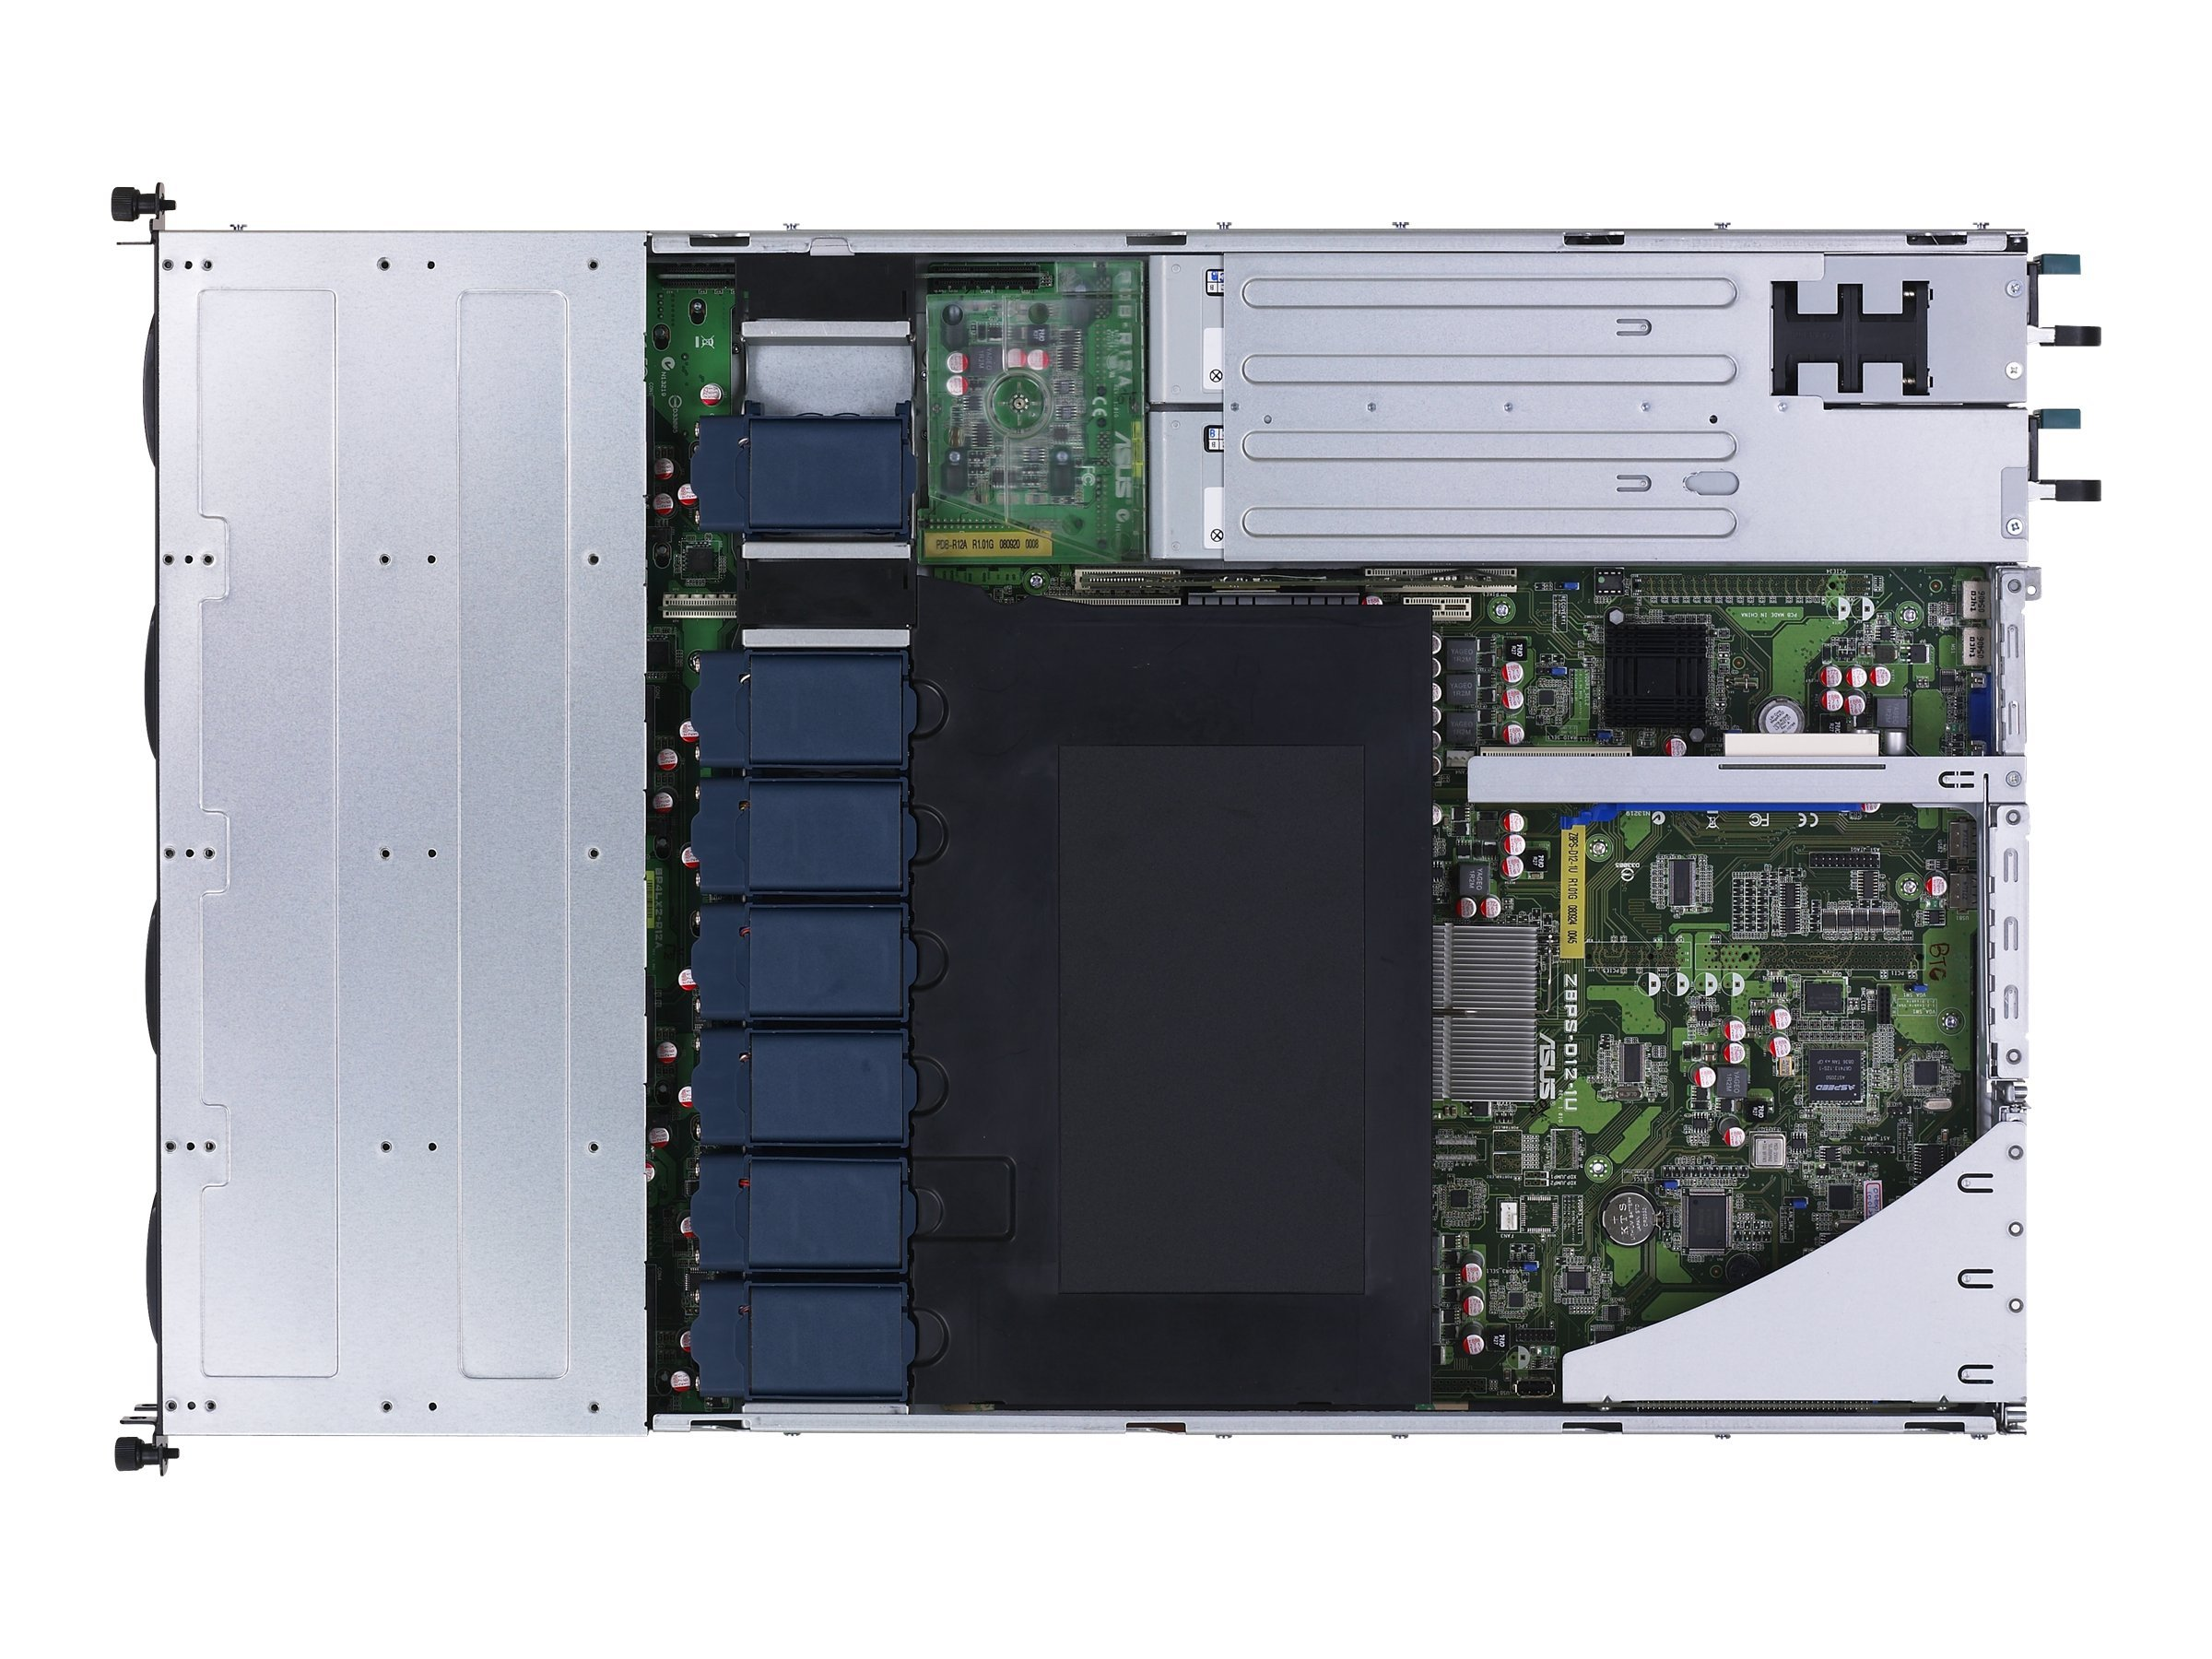 Asus RS700-E6-ERS Image 3